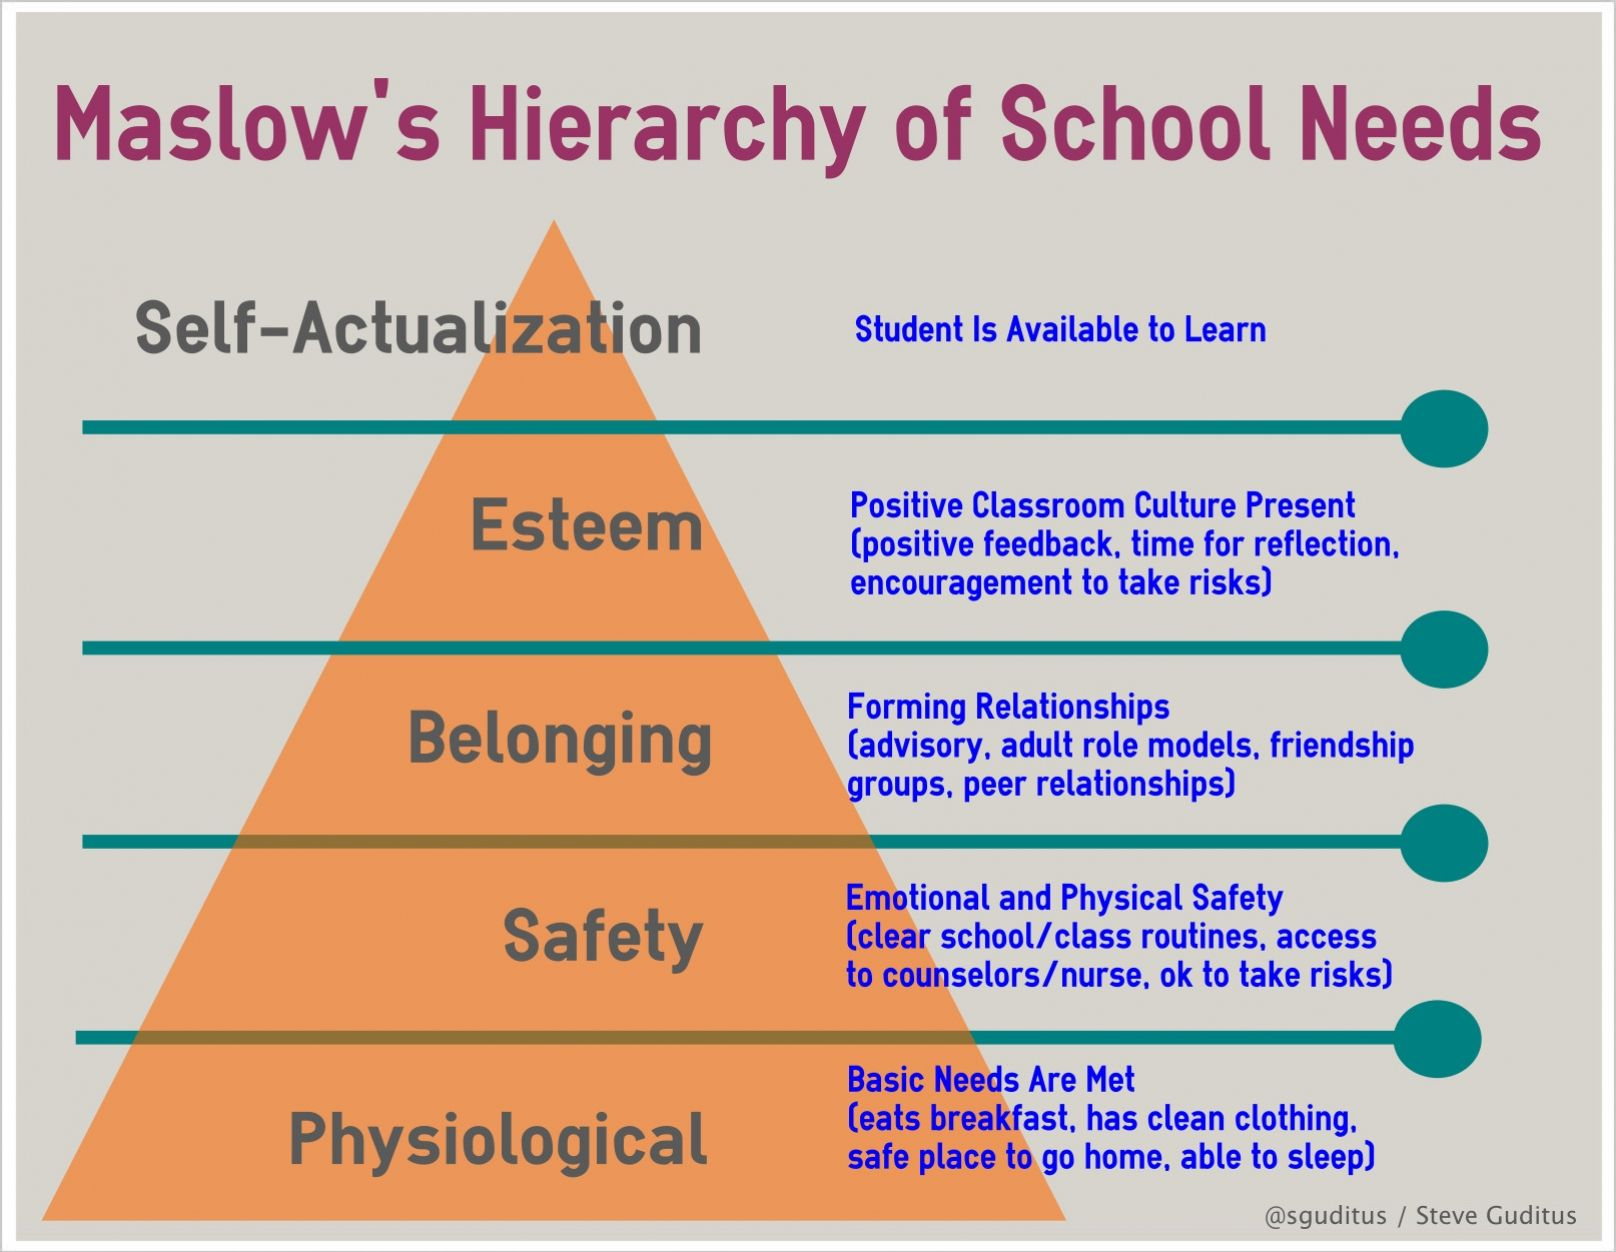 Reflections of an Educator Maslow's Hierarchy of School